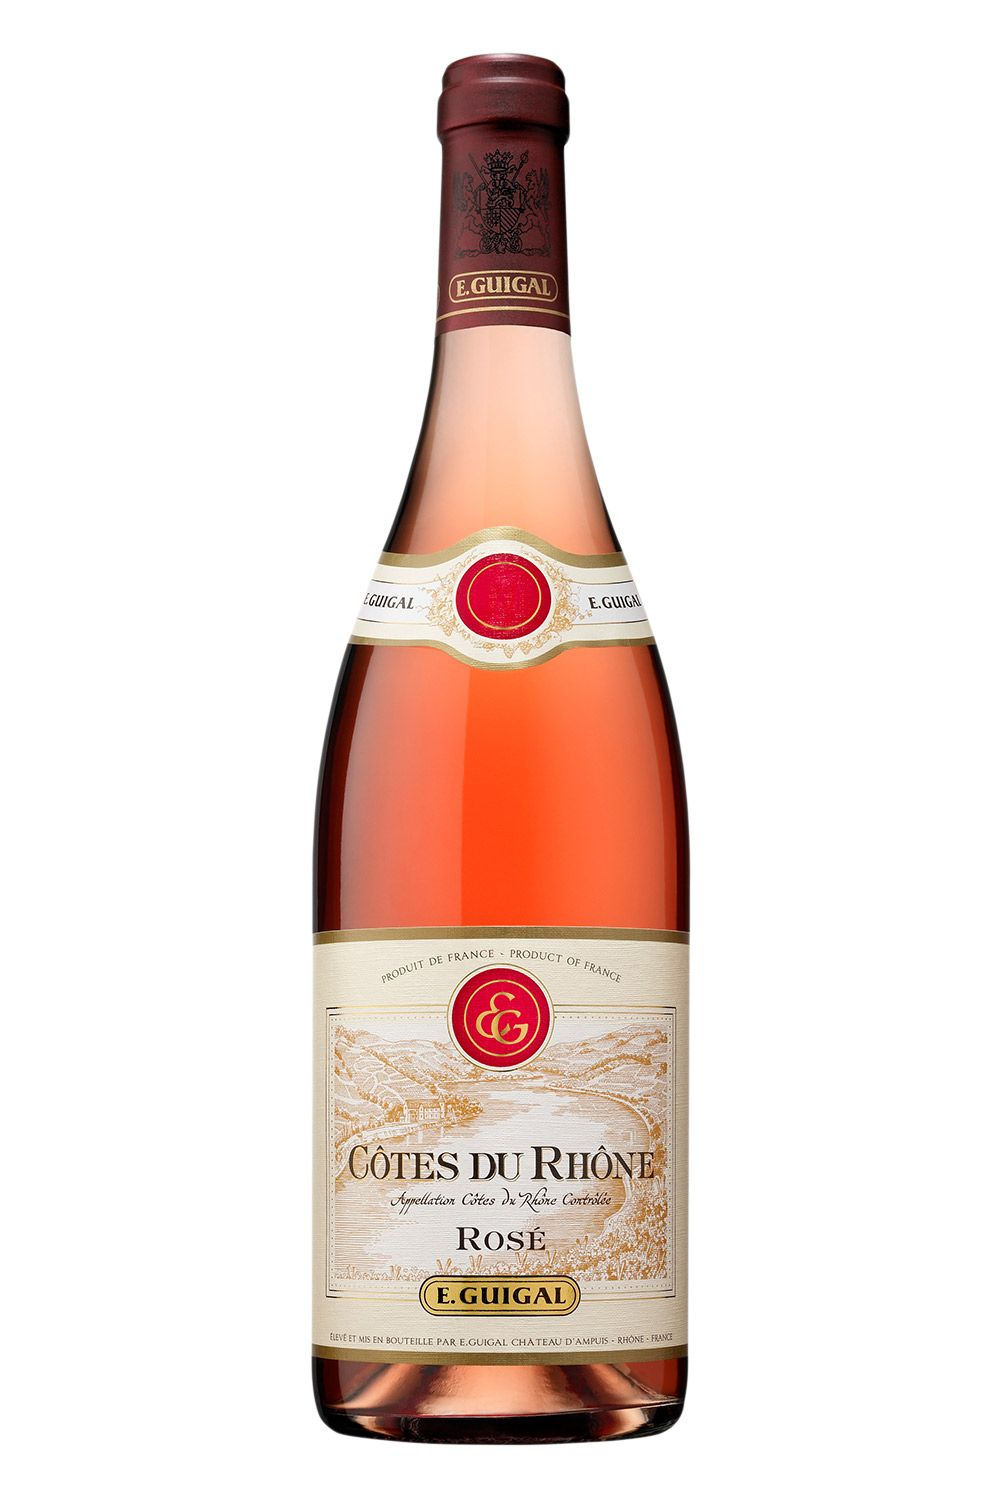 15 Best Rosé Wine and Champagne Bottles for Every Occasion in 2017